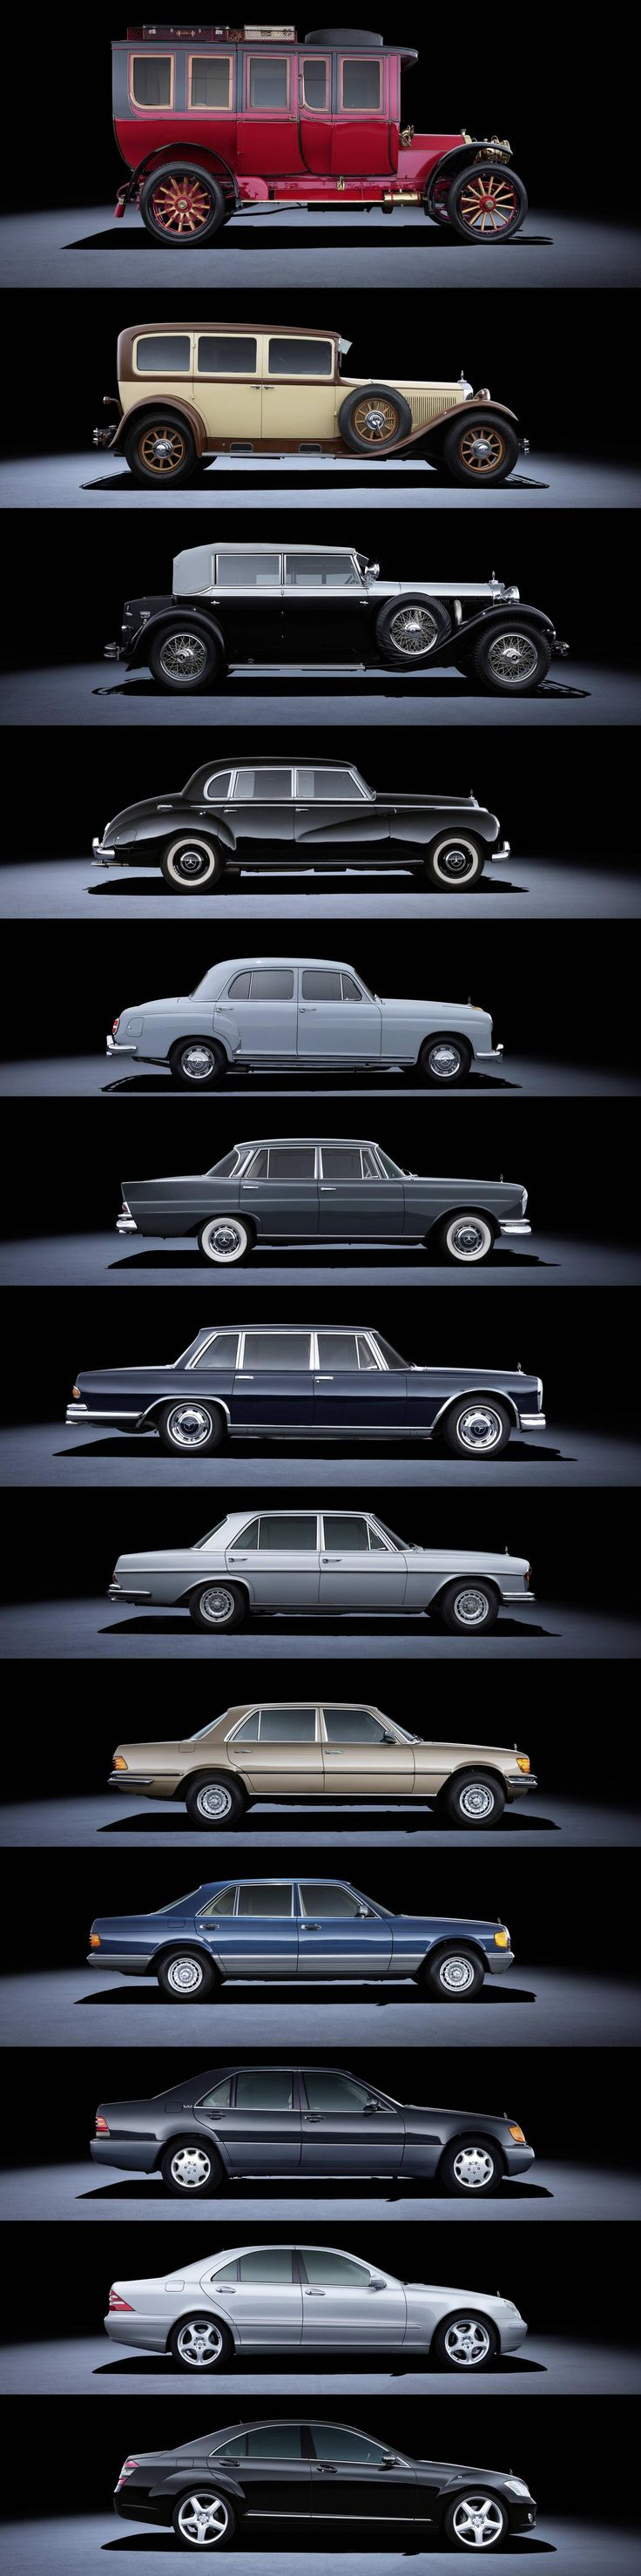 The Mercedes S-Class through the years - Imgur